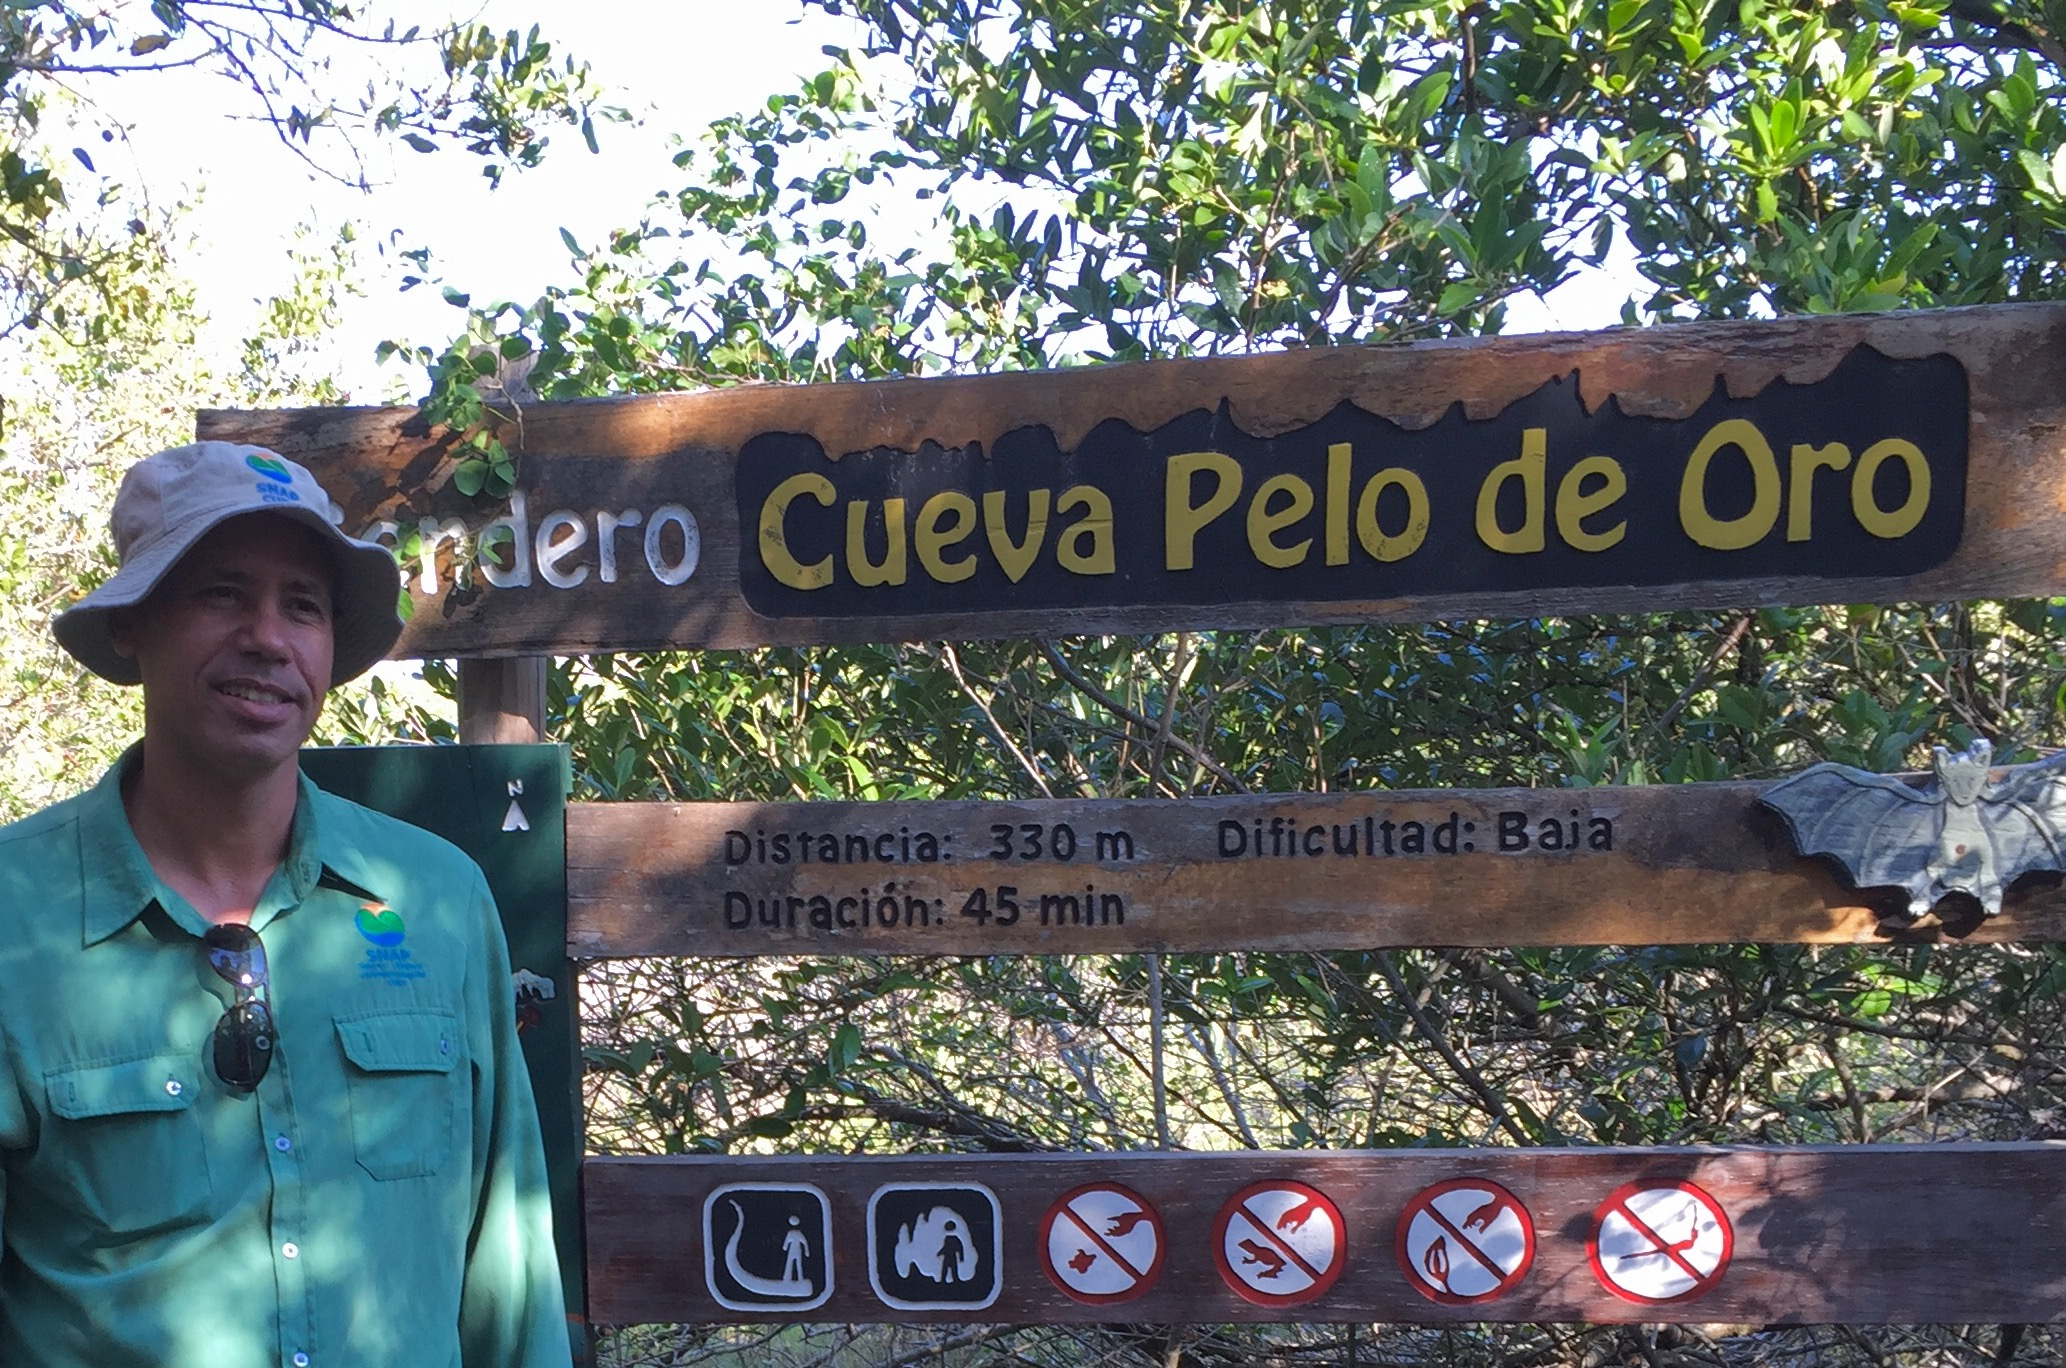 Edwin Ruiz Rojas, an ornithologist, works for the Cuban government agency that protects natural areas (photo by Betsy Herbert, 2017)